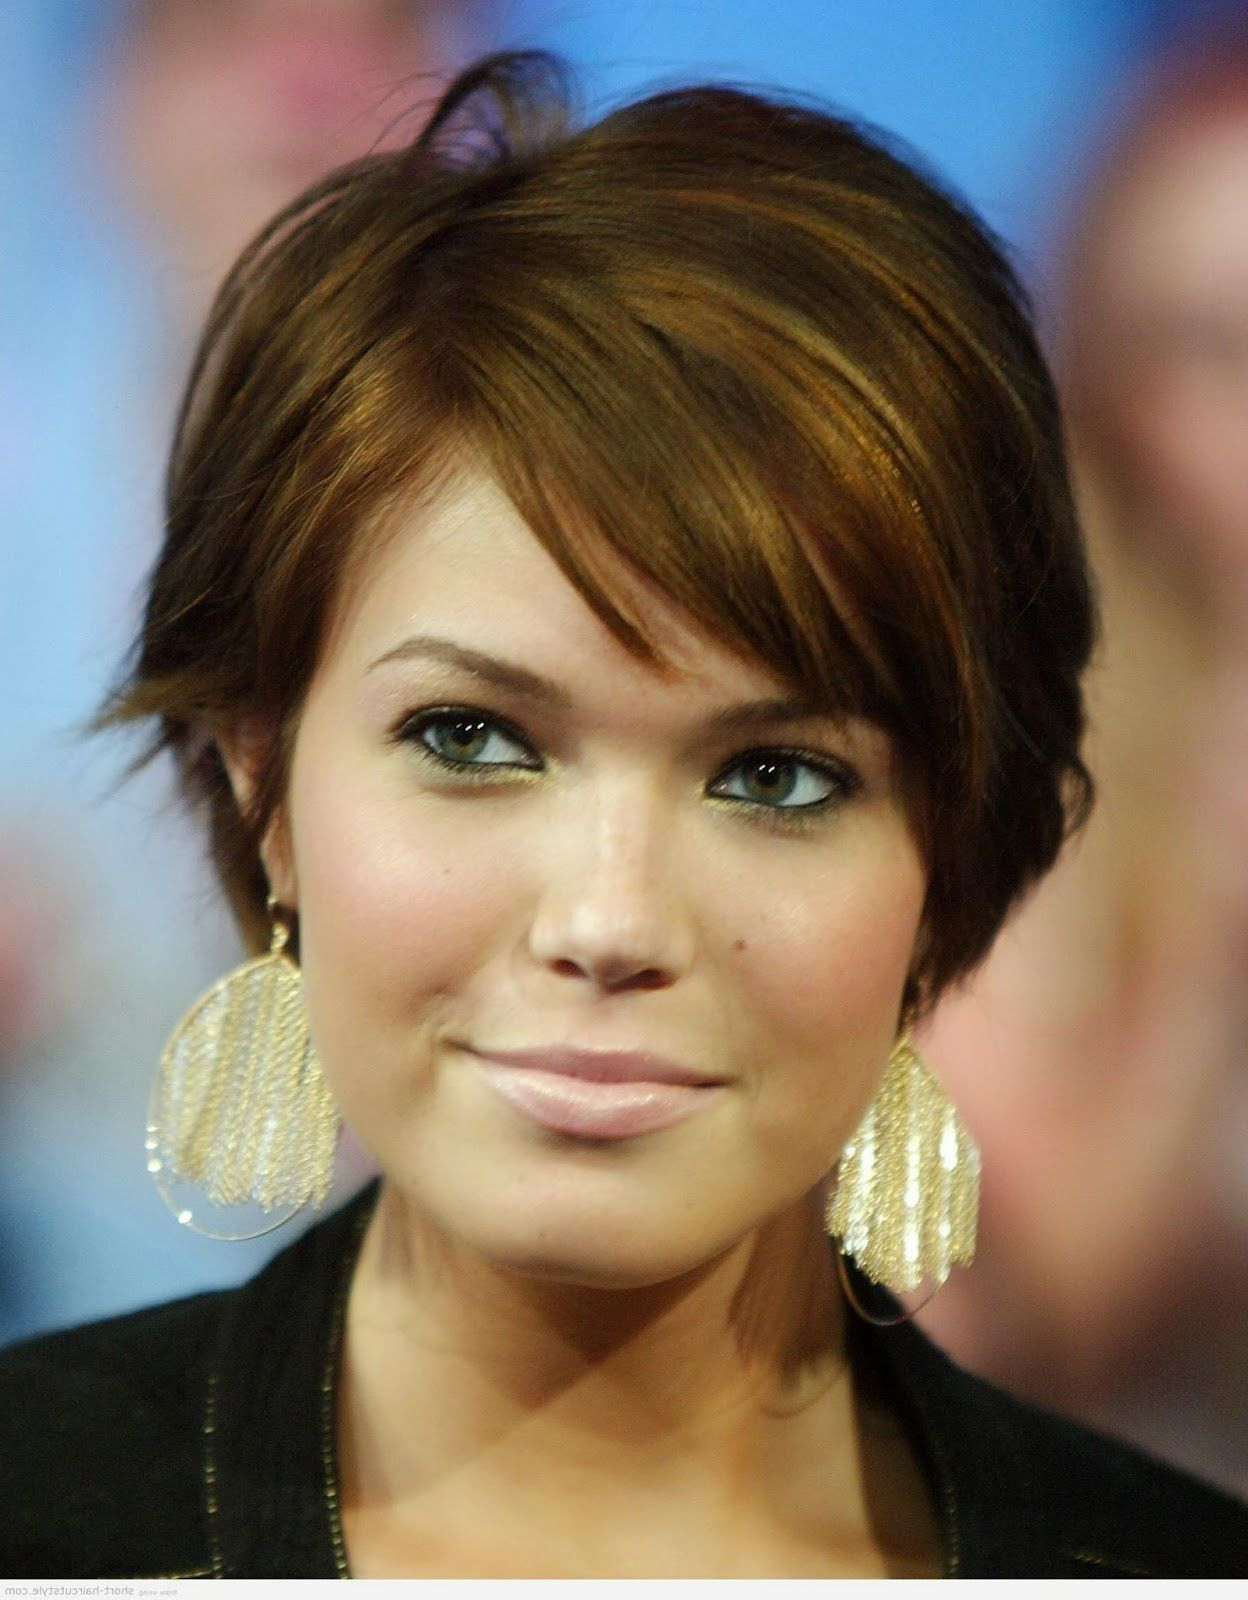 Flattering Hairstyles For Round Faces | Short Cool Hairstyles For For Flattering Short Haircuts For Round Faces (View 18 of 25)